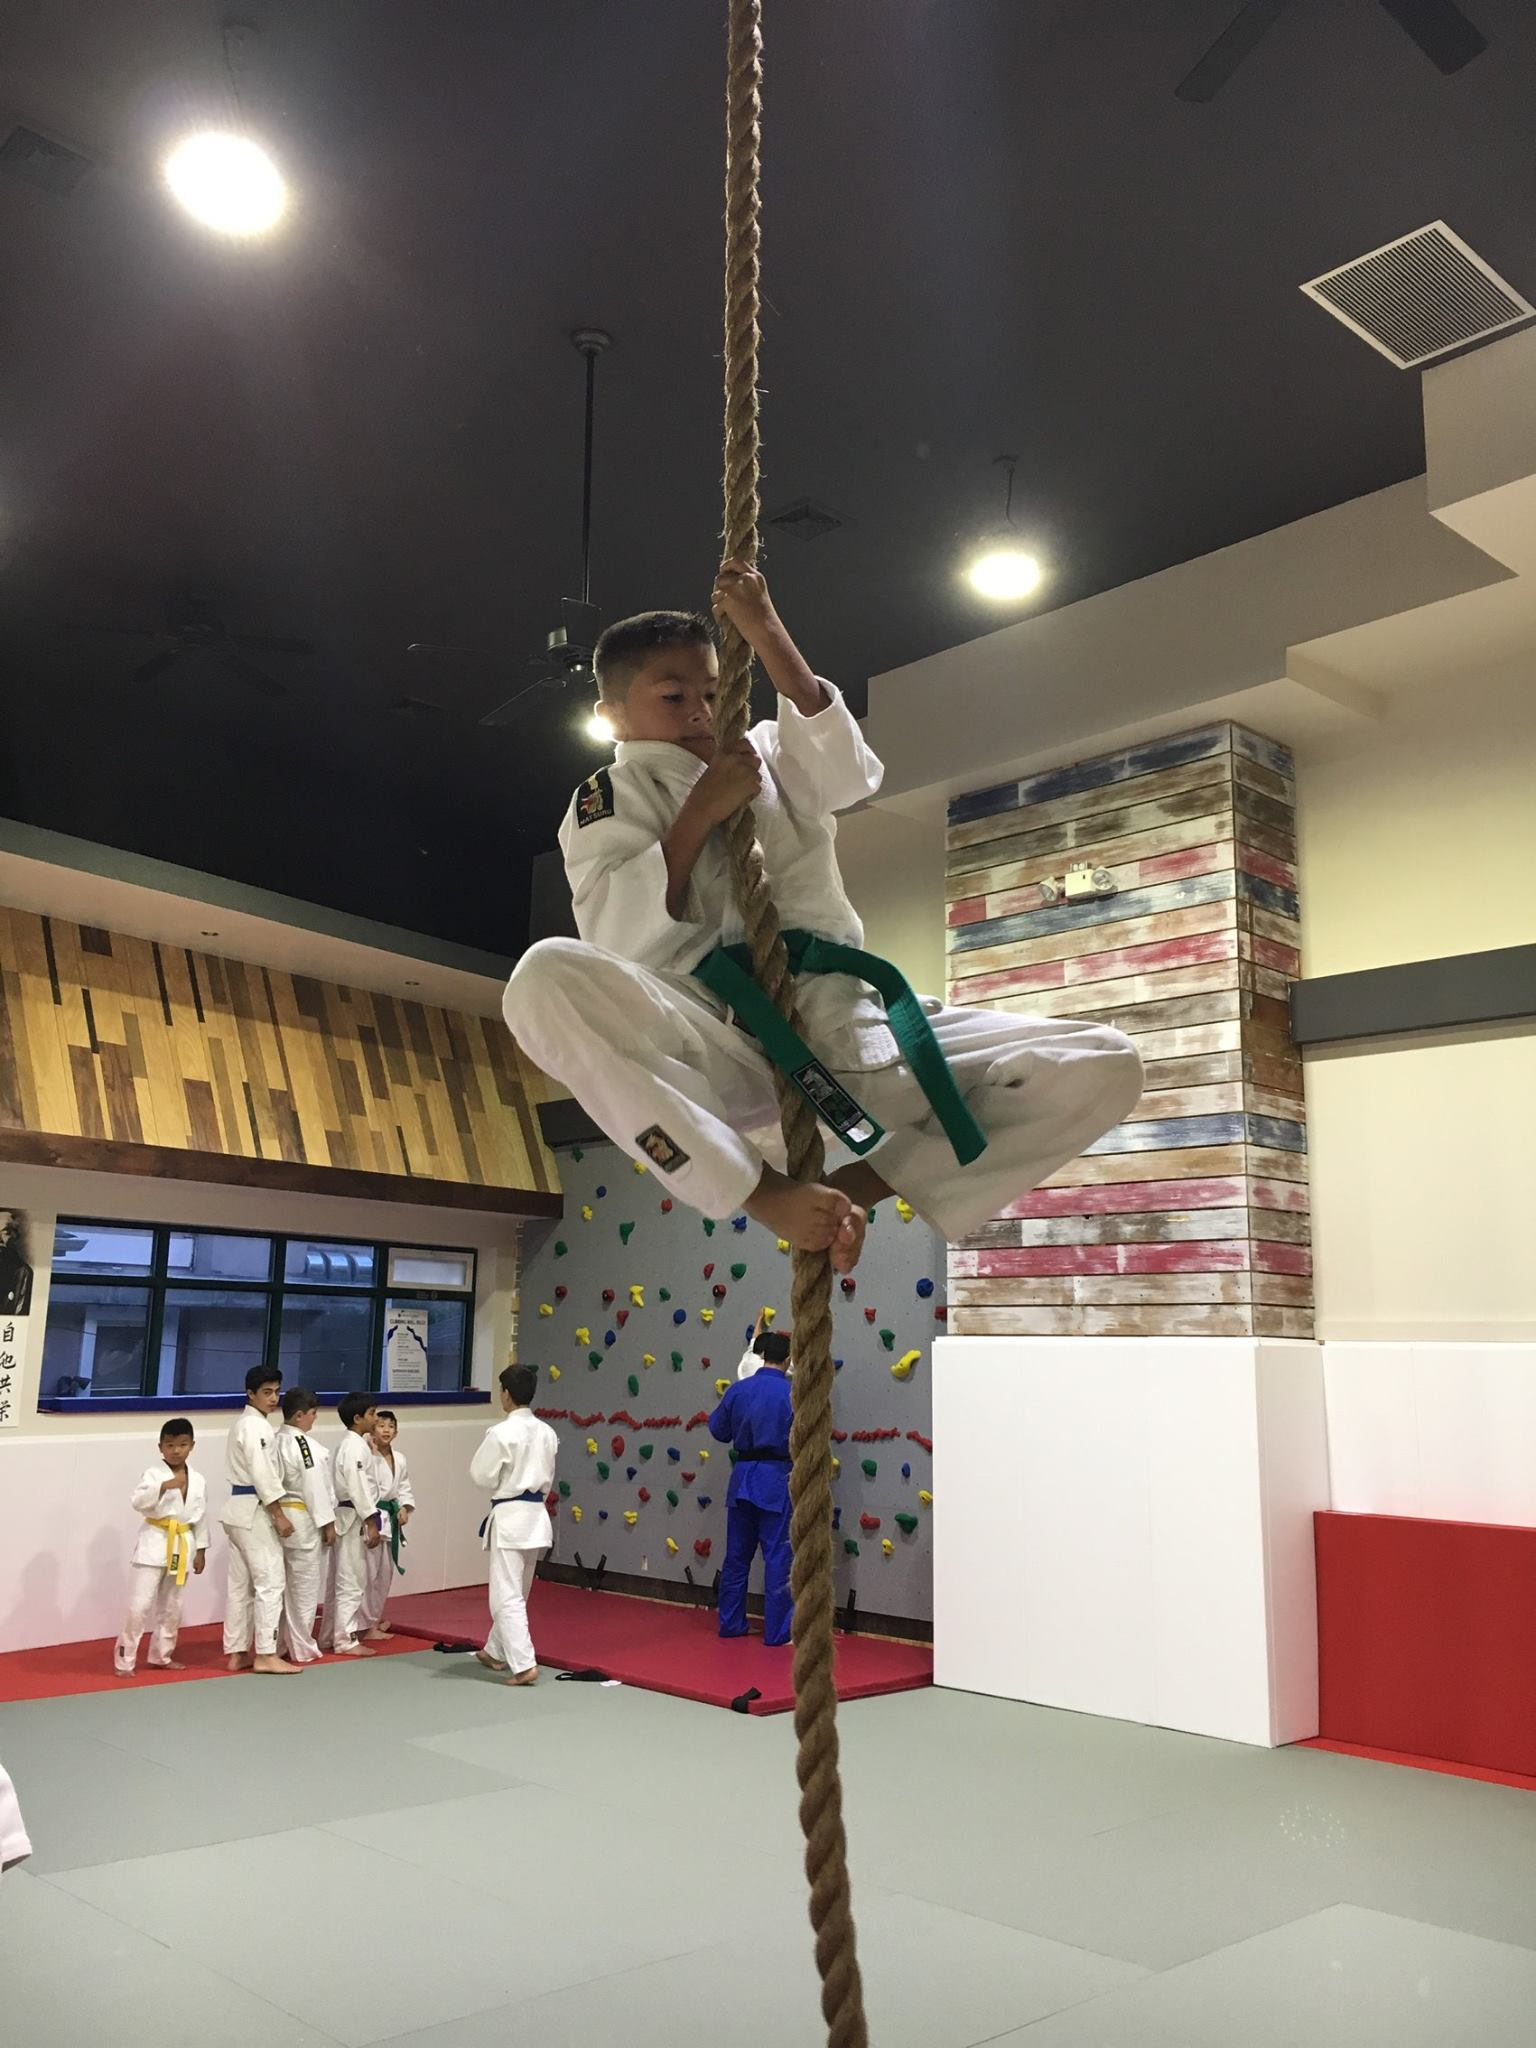 Ropes at ijc judo club, Flushing